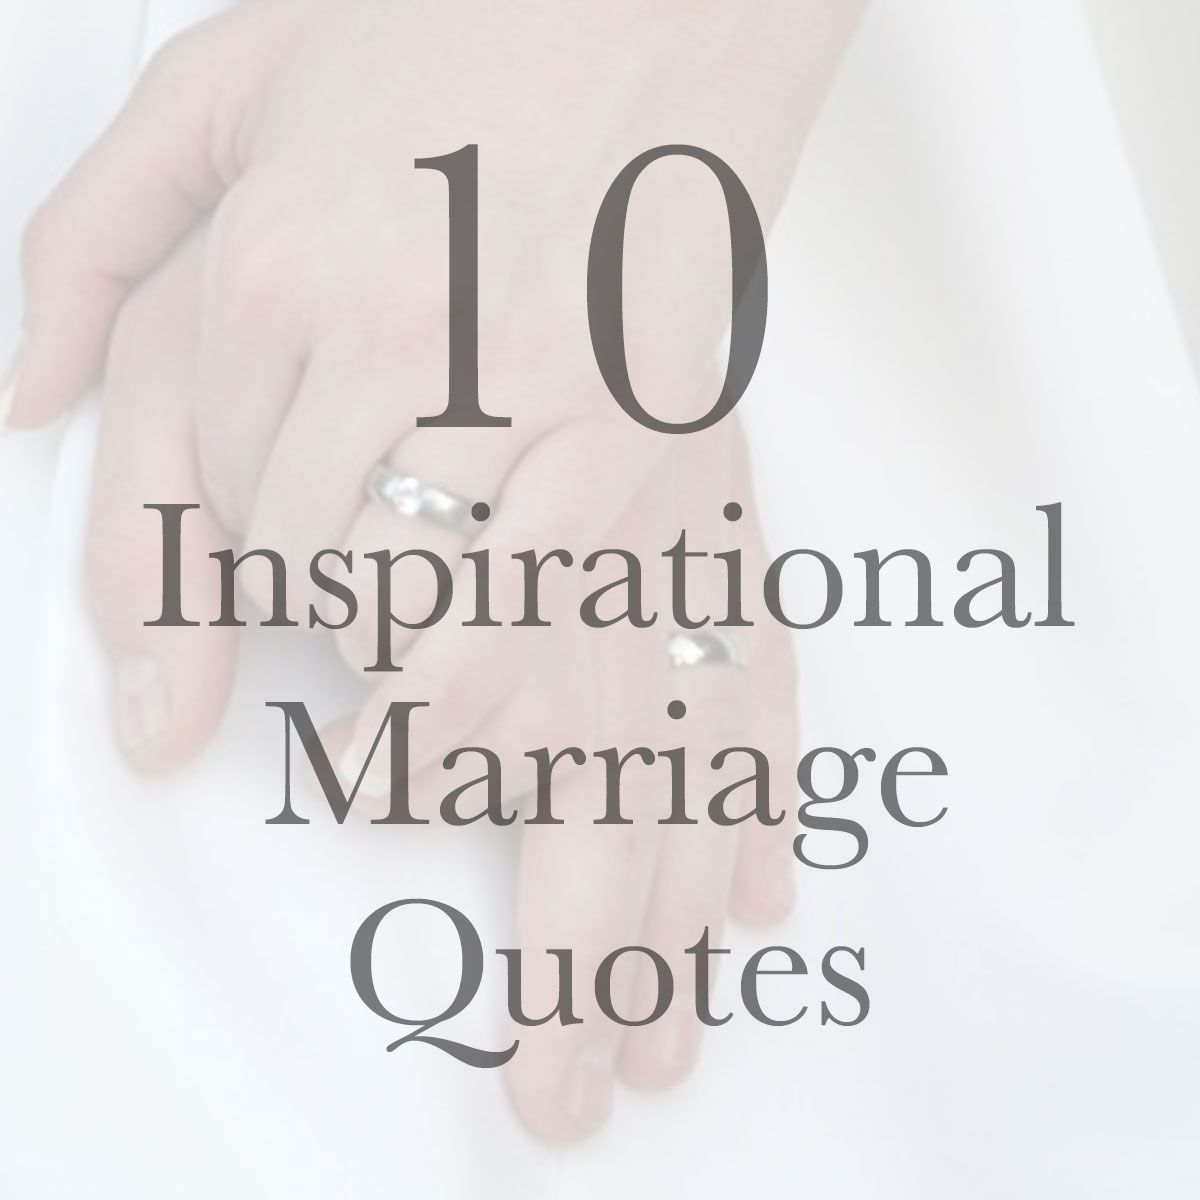 Love Quotes For Weddings Marriage Quotes  Inspirational Books And Relationships